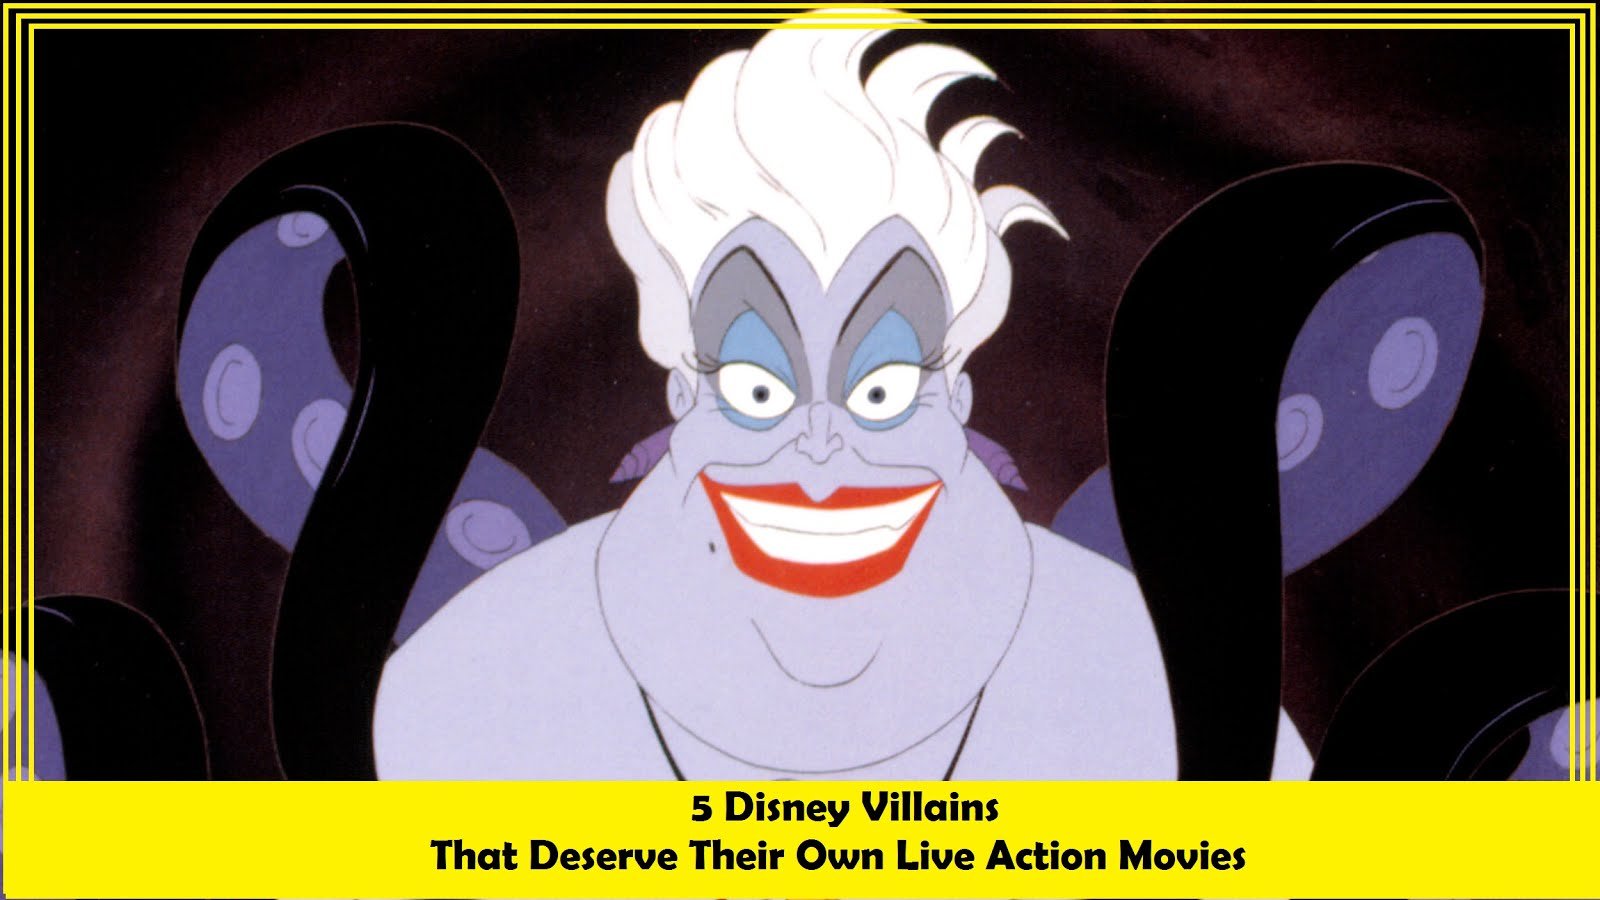 Disney Villains that Deserve Their Own Movies